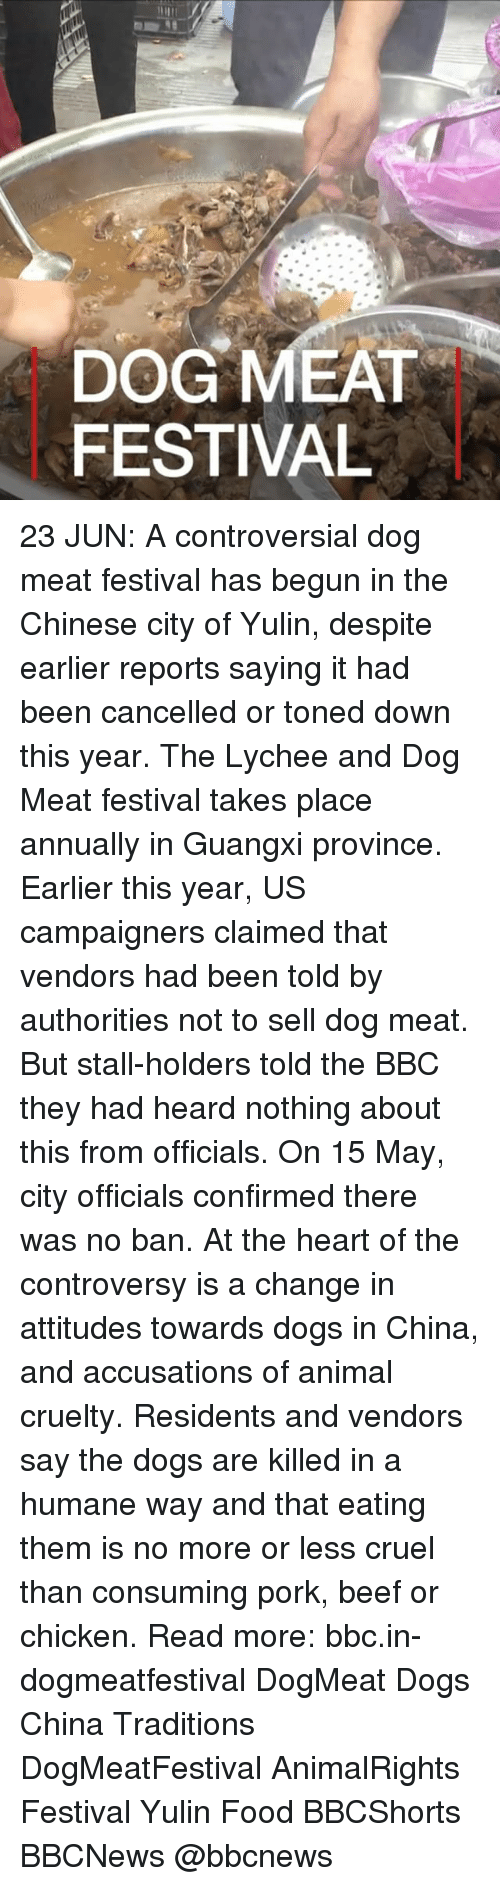 Porking: DOG MEAT  FESTIVAL 23 JUN: A controversial dog meat festival has begun in the Chinese city of Yulin, despite earlier reports saying it had been cancelled or toned down this year. The Lychee and Dog Meat festival takes place annually in Guangxi province. Earlier this year, US campaigners claimed that vendors had been told by authorities not to sell dog meat. But stall-holders told the BBC they had heard nothing about this from officials. On 15 May, city officials confirmed there was no ban. At the heart of the controversy is a change in attitudes towards dogs in China, and accusations of animal cruelty. Residents and vendors say the dogs are killed in a humane way and that eating them is no more or less cruel than consuming pork, beef or chicken. Read more: bbc.in-dogmeatfestival DogMeat Dogs China Traditions DogMeatFestival AnimalRights Festival Yulin Food BBCShorts BBCNews @bbcnews